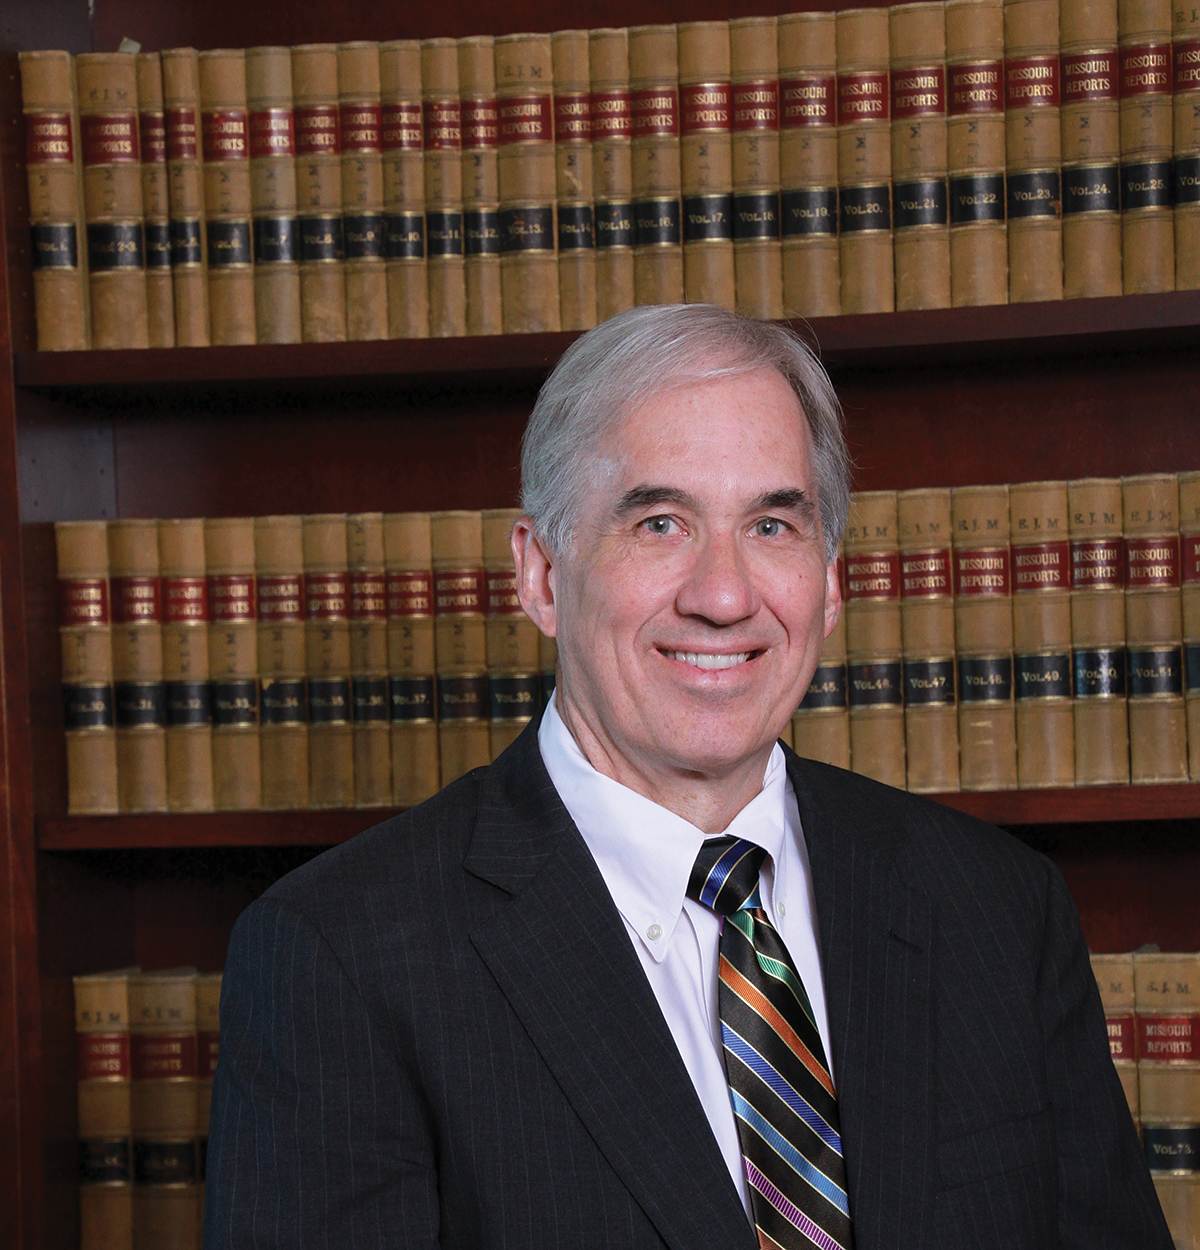 Event - Lecture and Book Signing with David Limbaugh